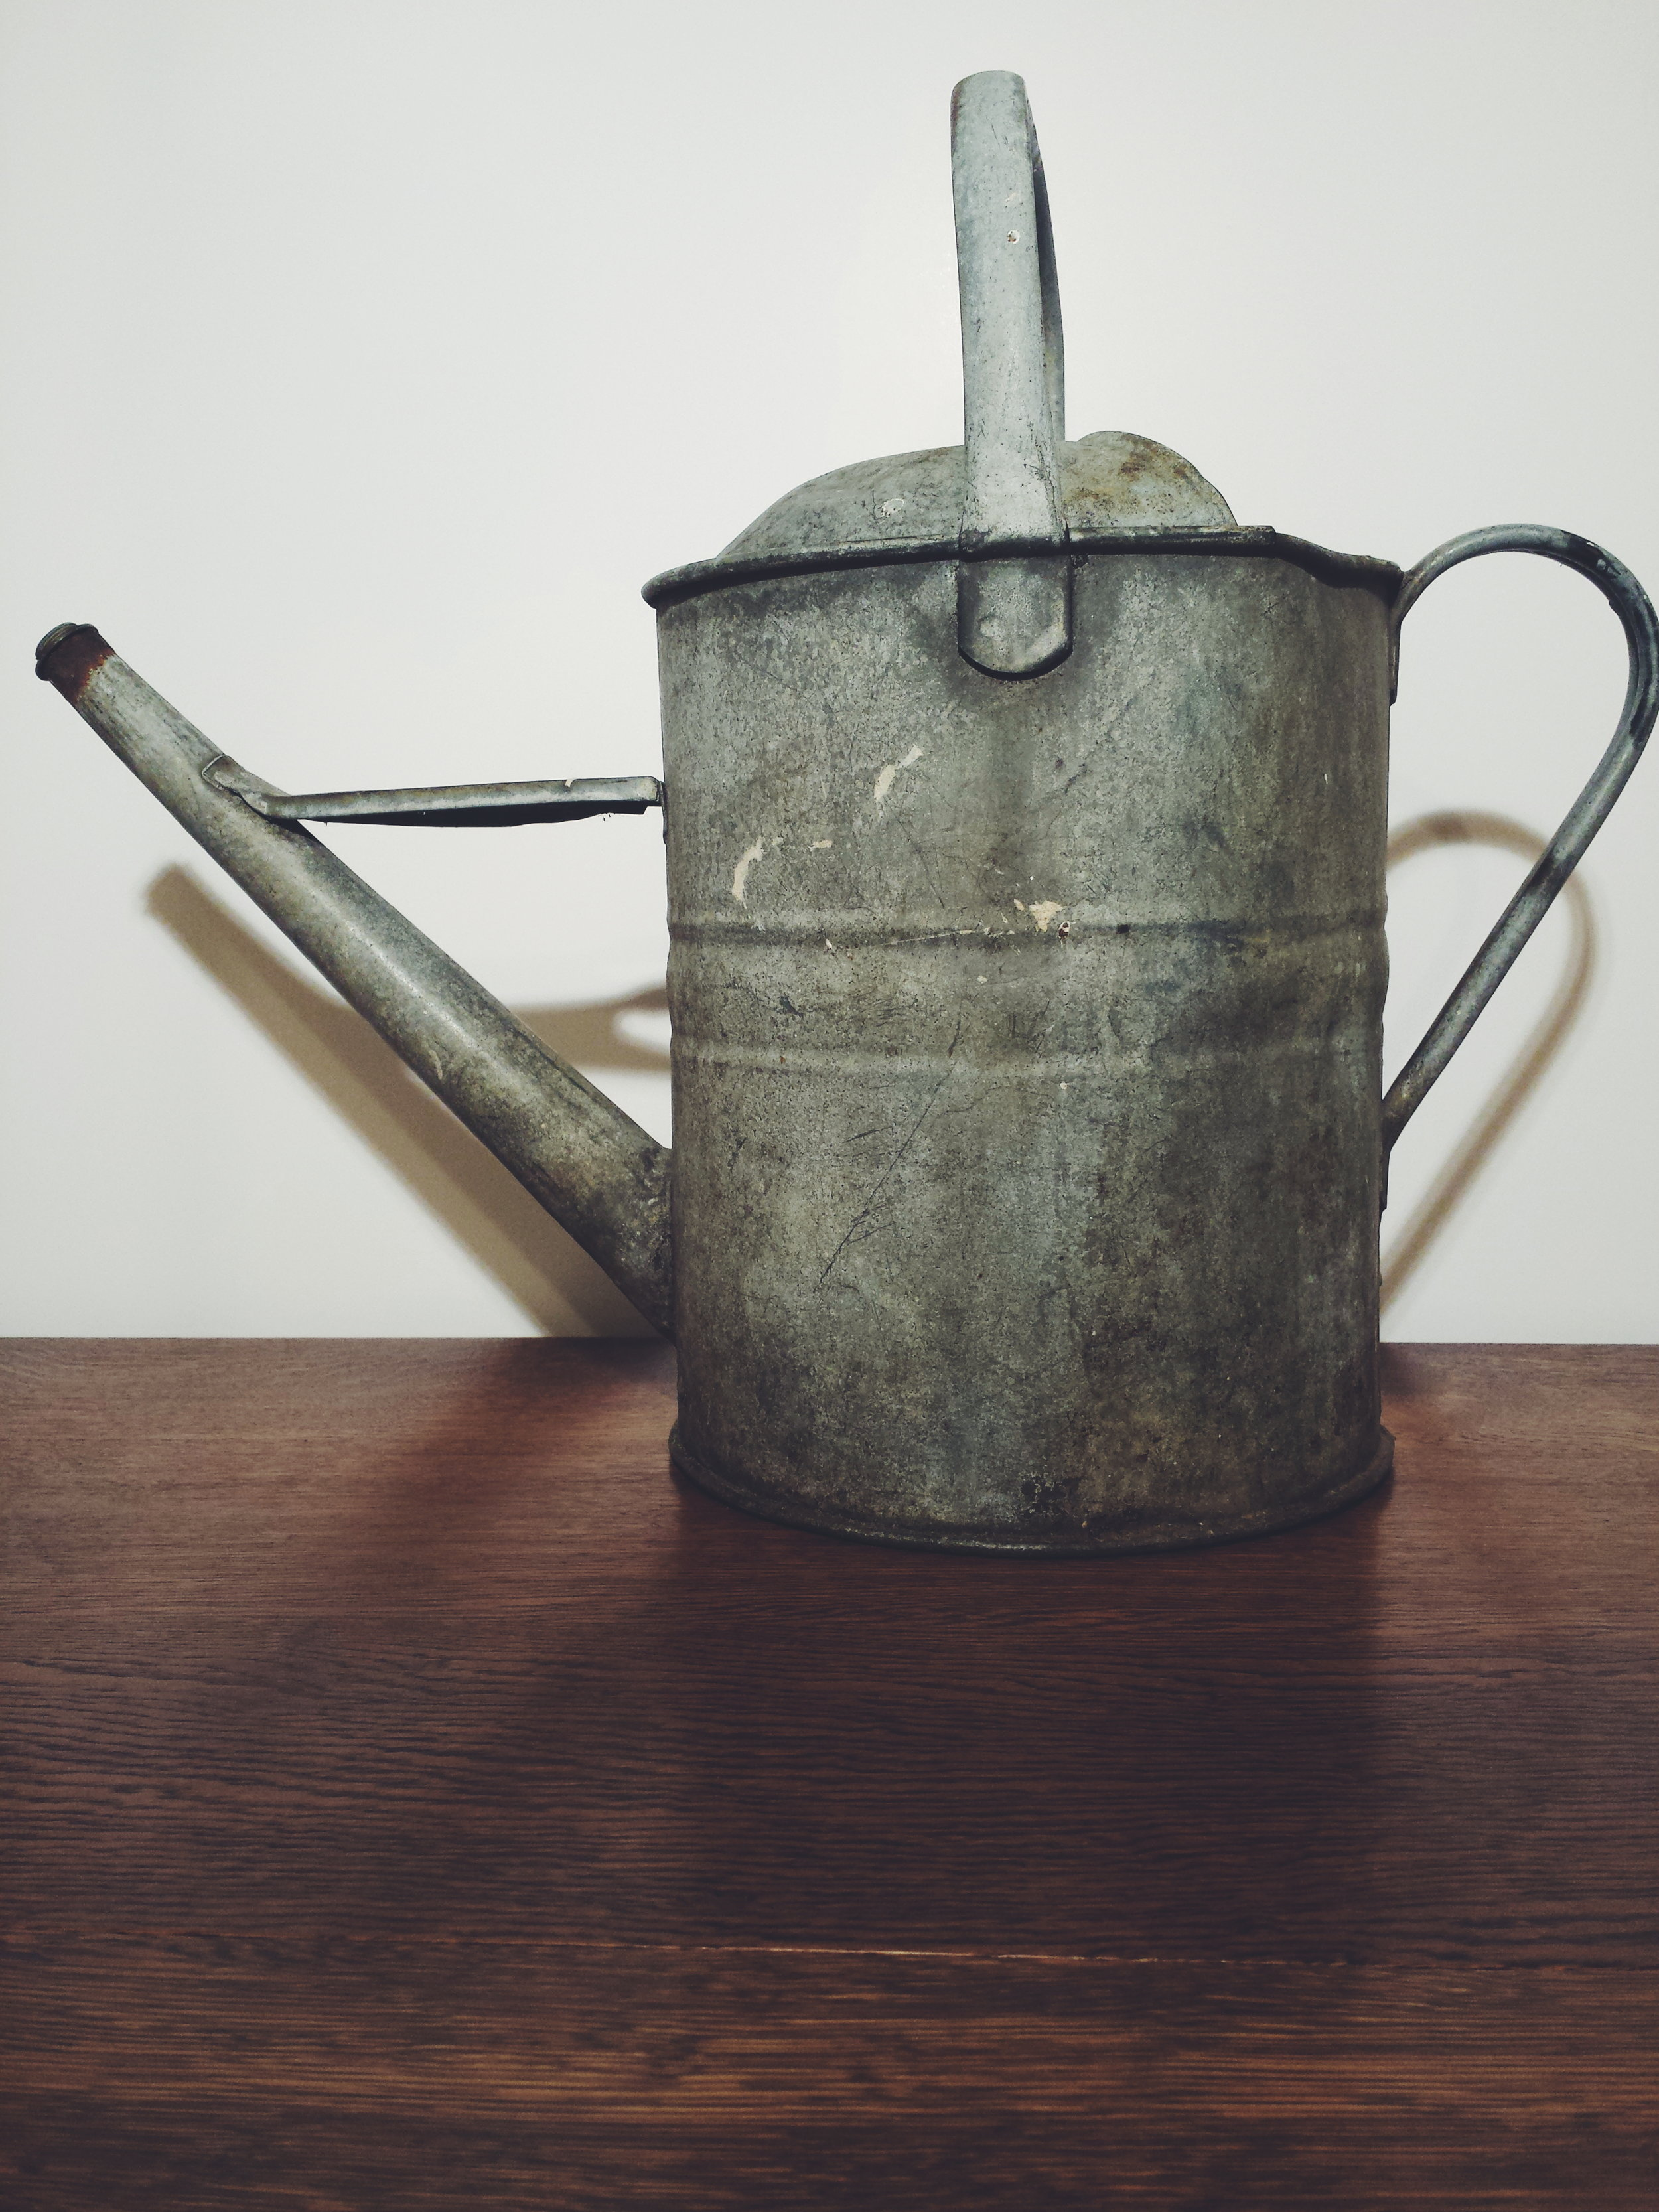 Watering can £7.50 to hire